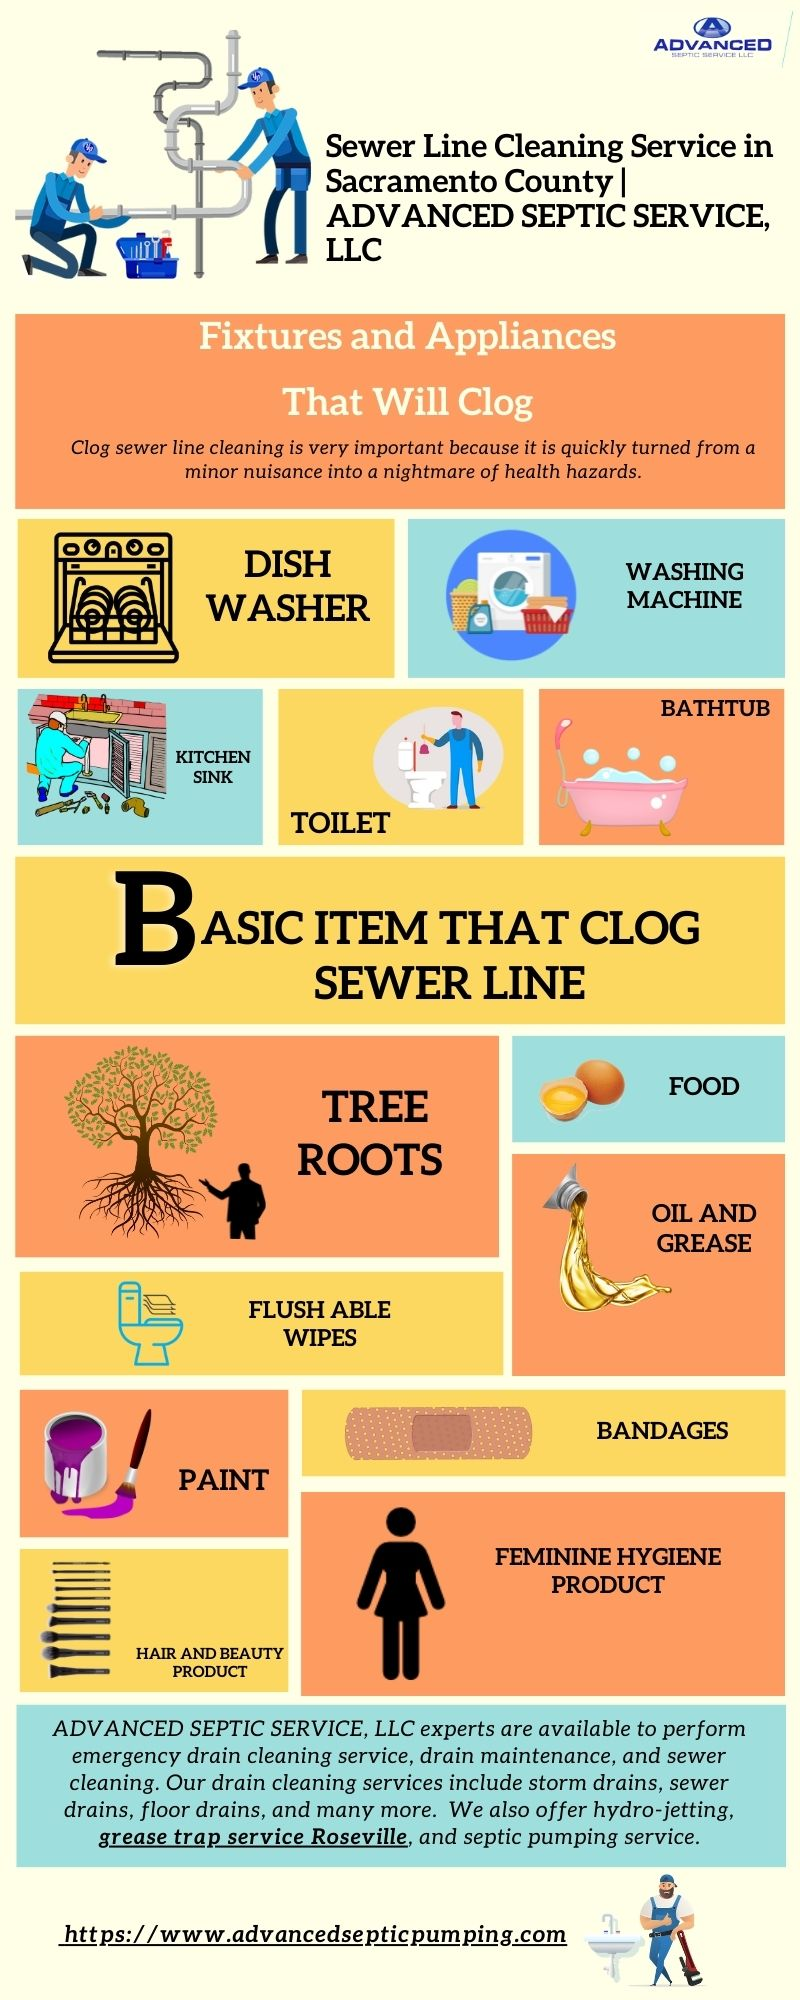 Sewer Line Cleaning Service in Sacramento County   ADVANCED SEPTIC SERVICE, LLC